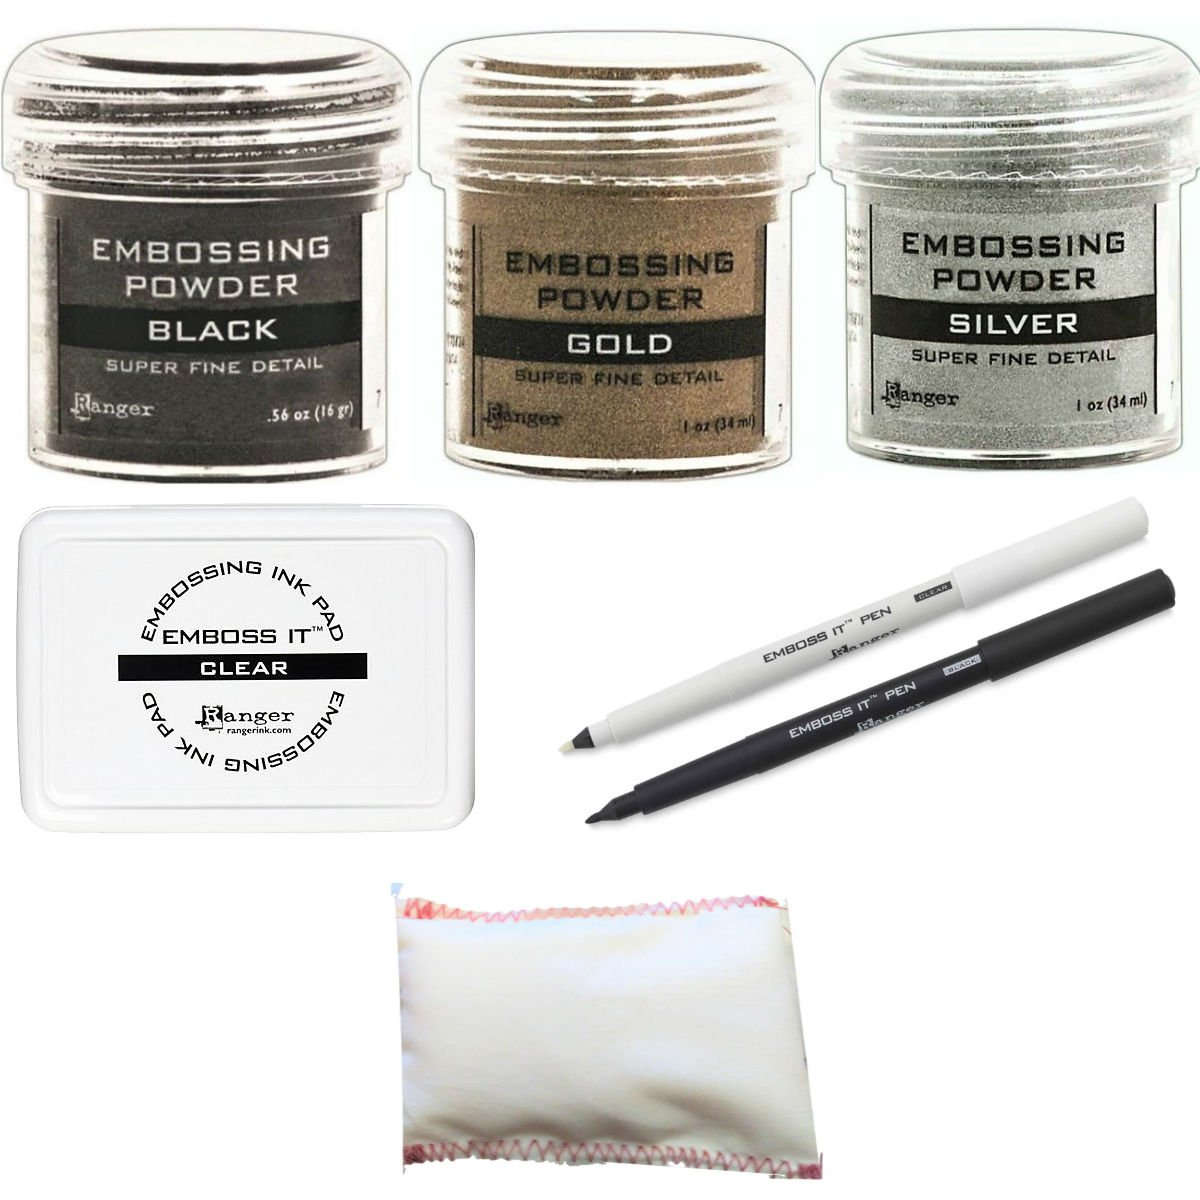 Embossing Kit Bundle - 3 Ranger Super Fine Embossing Powder, 1 Bye Bye Static Pad, 1 Ranger Emboss It Foam Pad and Two Emboss It Pens Black and Clear by Big Dream Arts and Parties